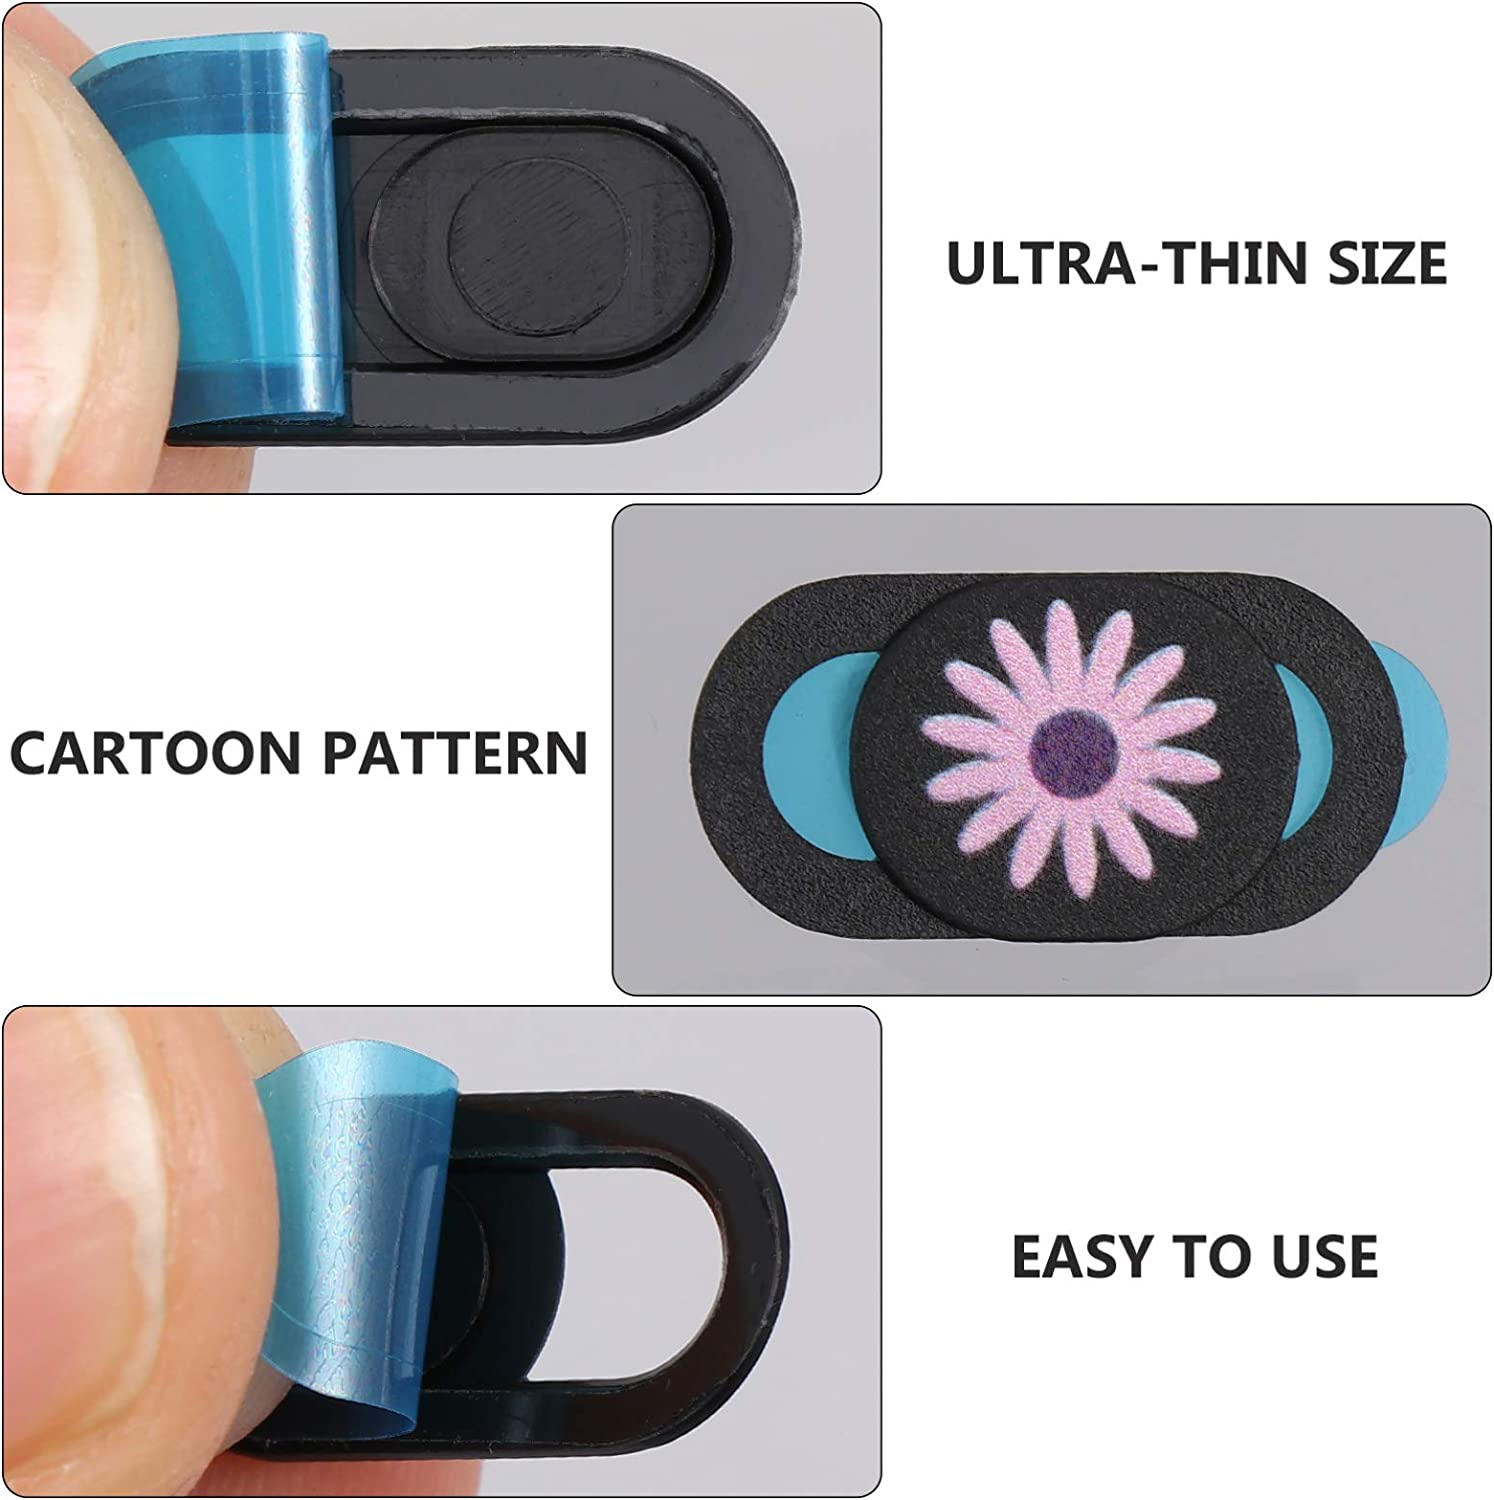 Minkissy 3pcs Chrysanthemum Style Webcam Cover Laptop Camera Cover Blocker Compatible for Computer Tablet Phone Privacy Protector Random Color